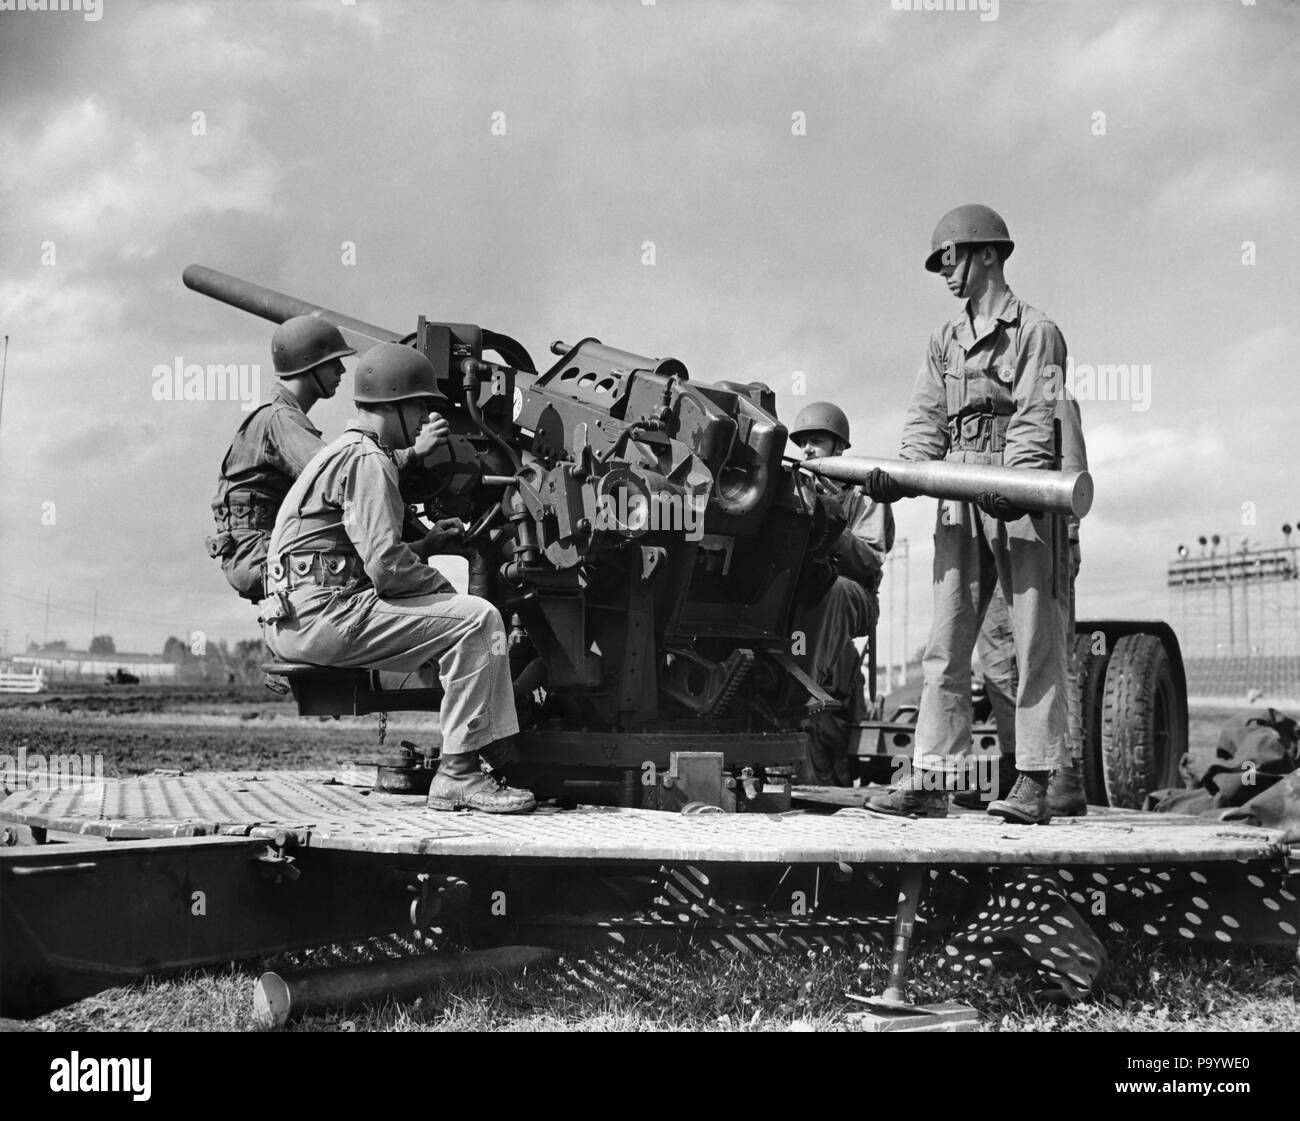 1940s crew of four world war ii soldiers manning artillery cannon loading shell into breech of gun q74716 cpc001 hars loading strength courage trio world